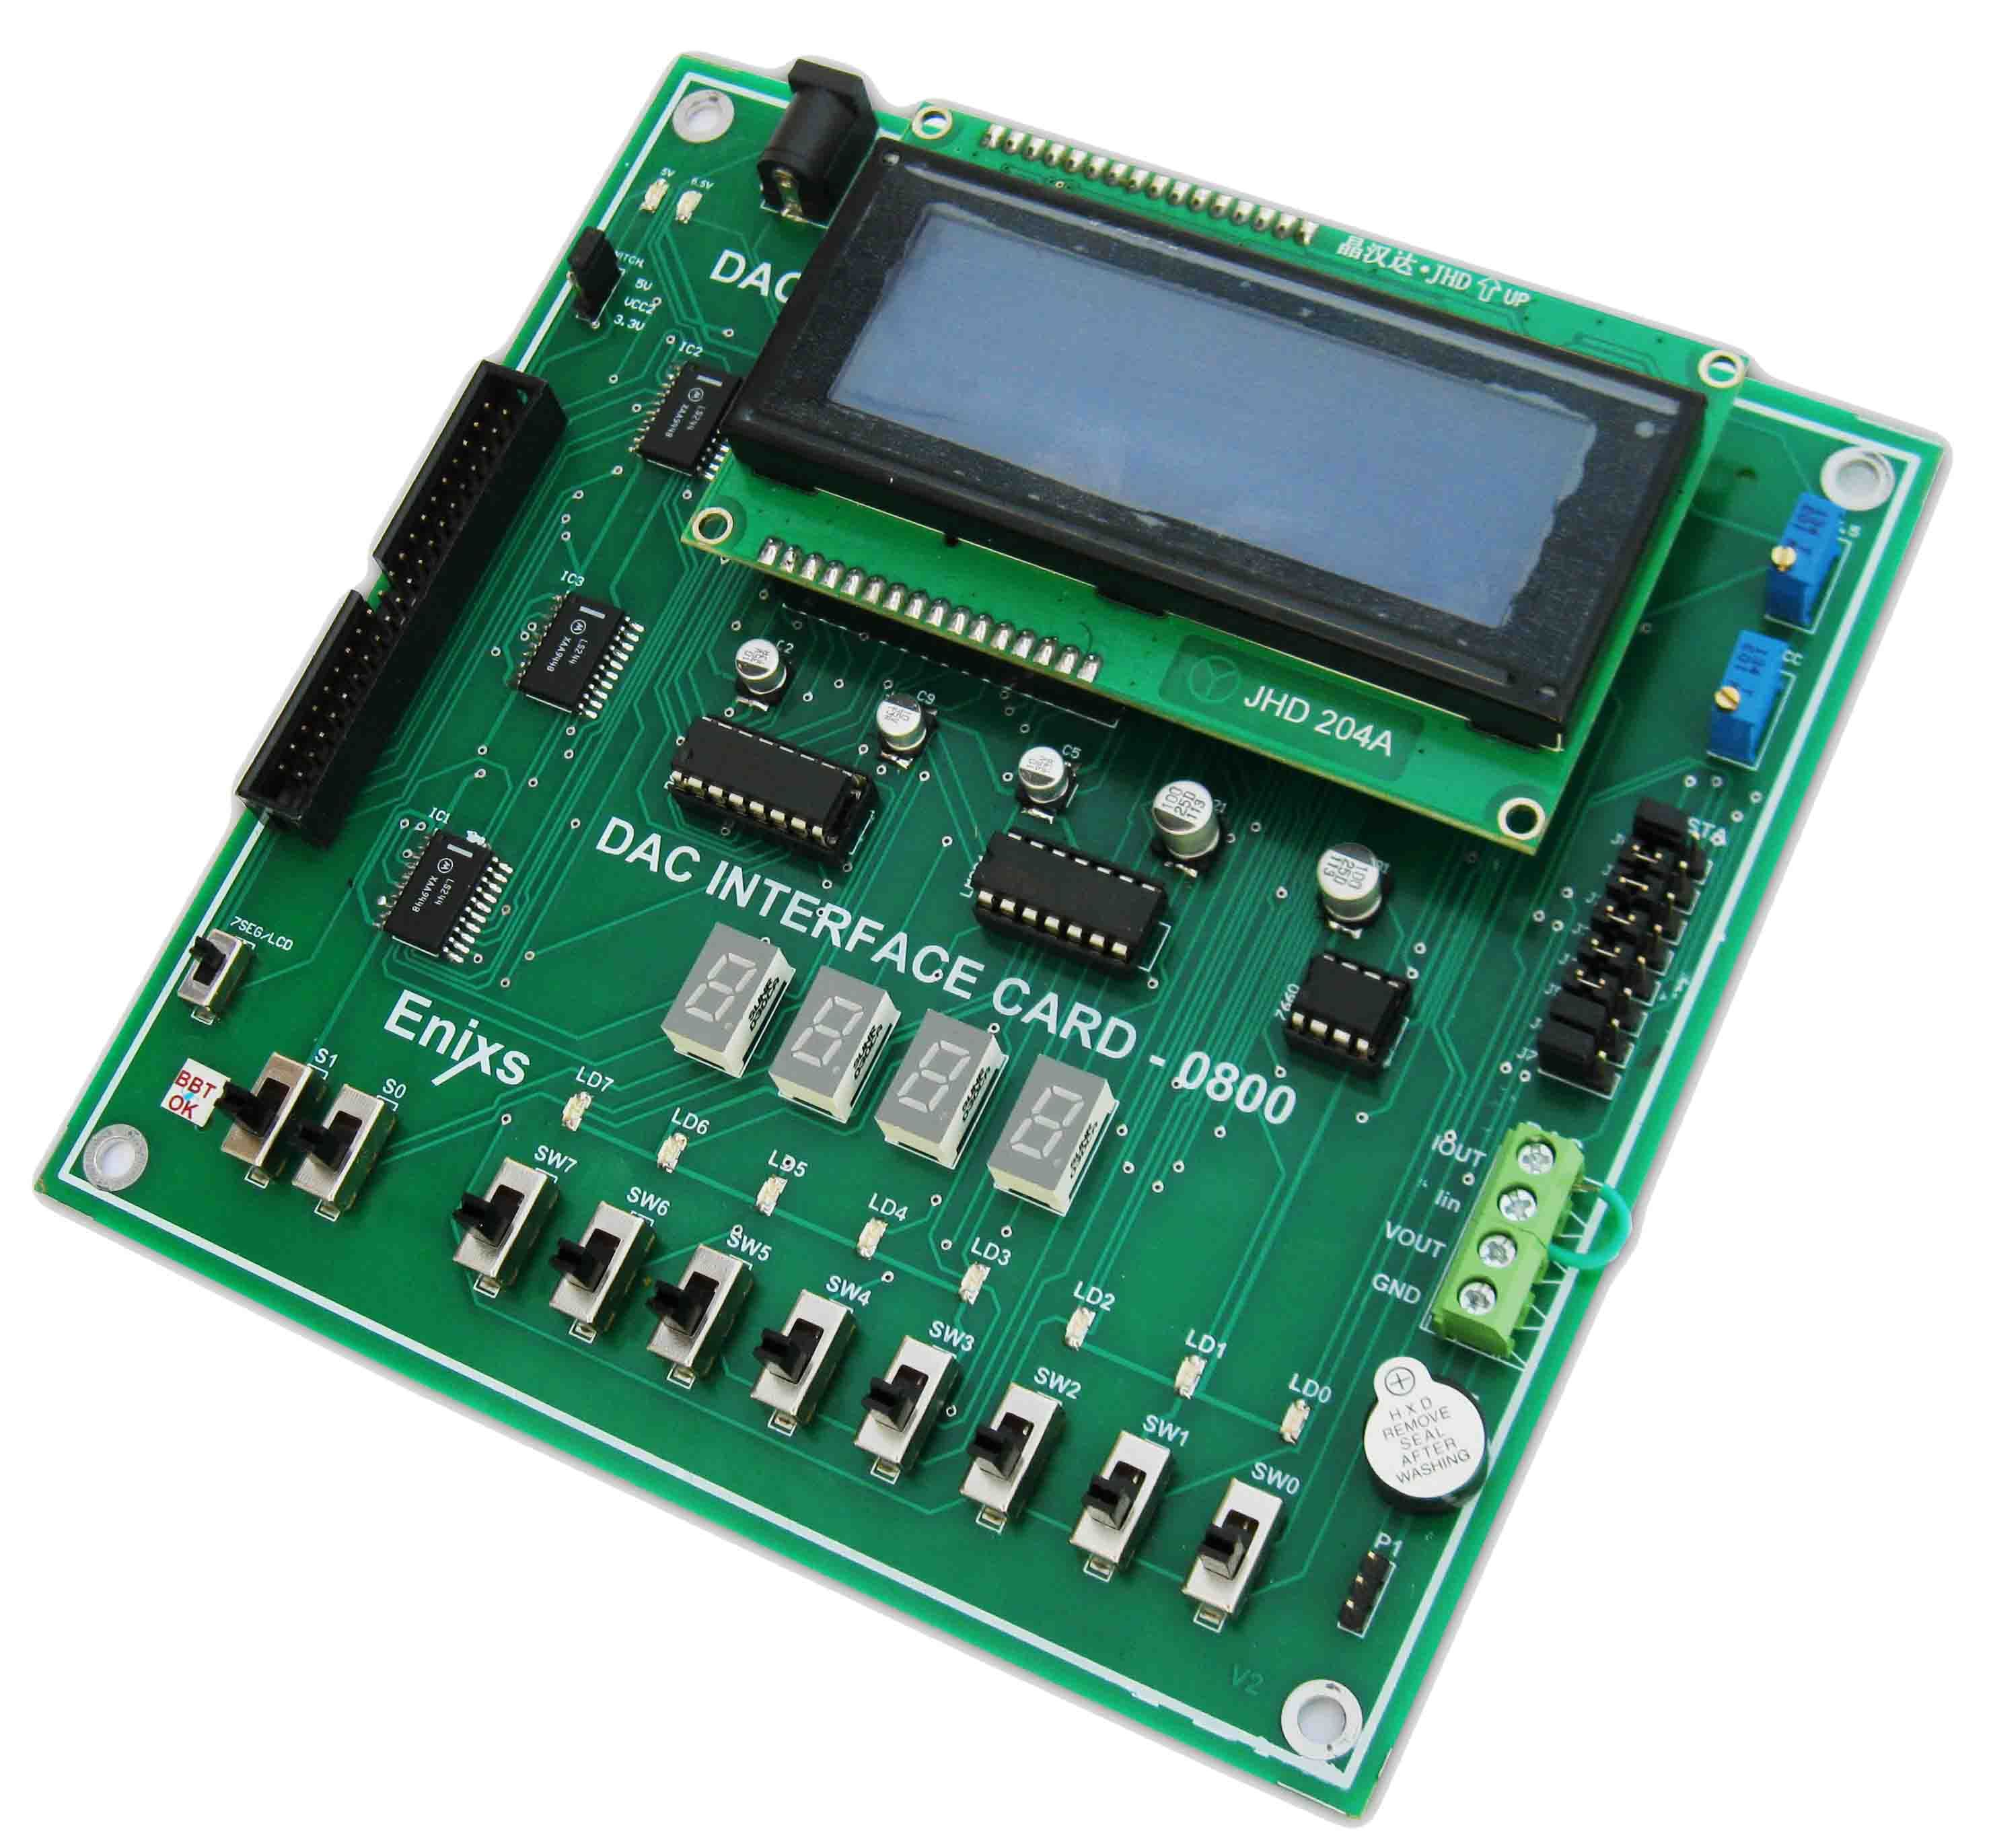 medium resolution of dac0800 interface card the dac interface card is designed to demonstrate the digital to analog conversion using dac 0800 chip